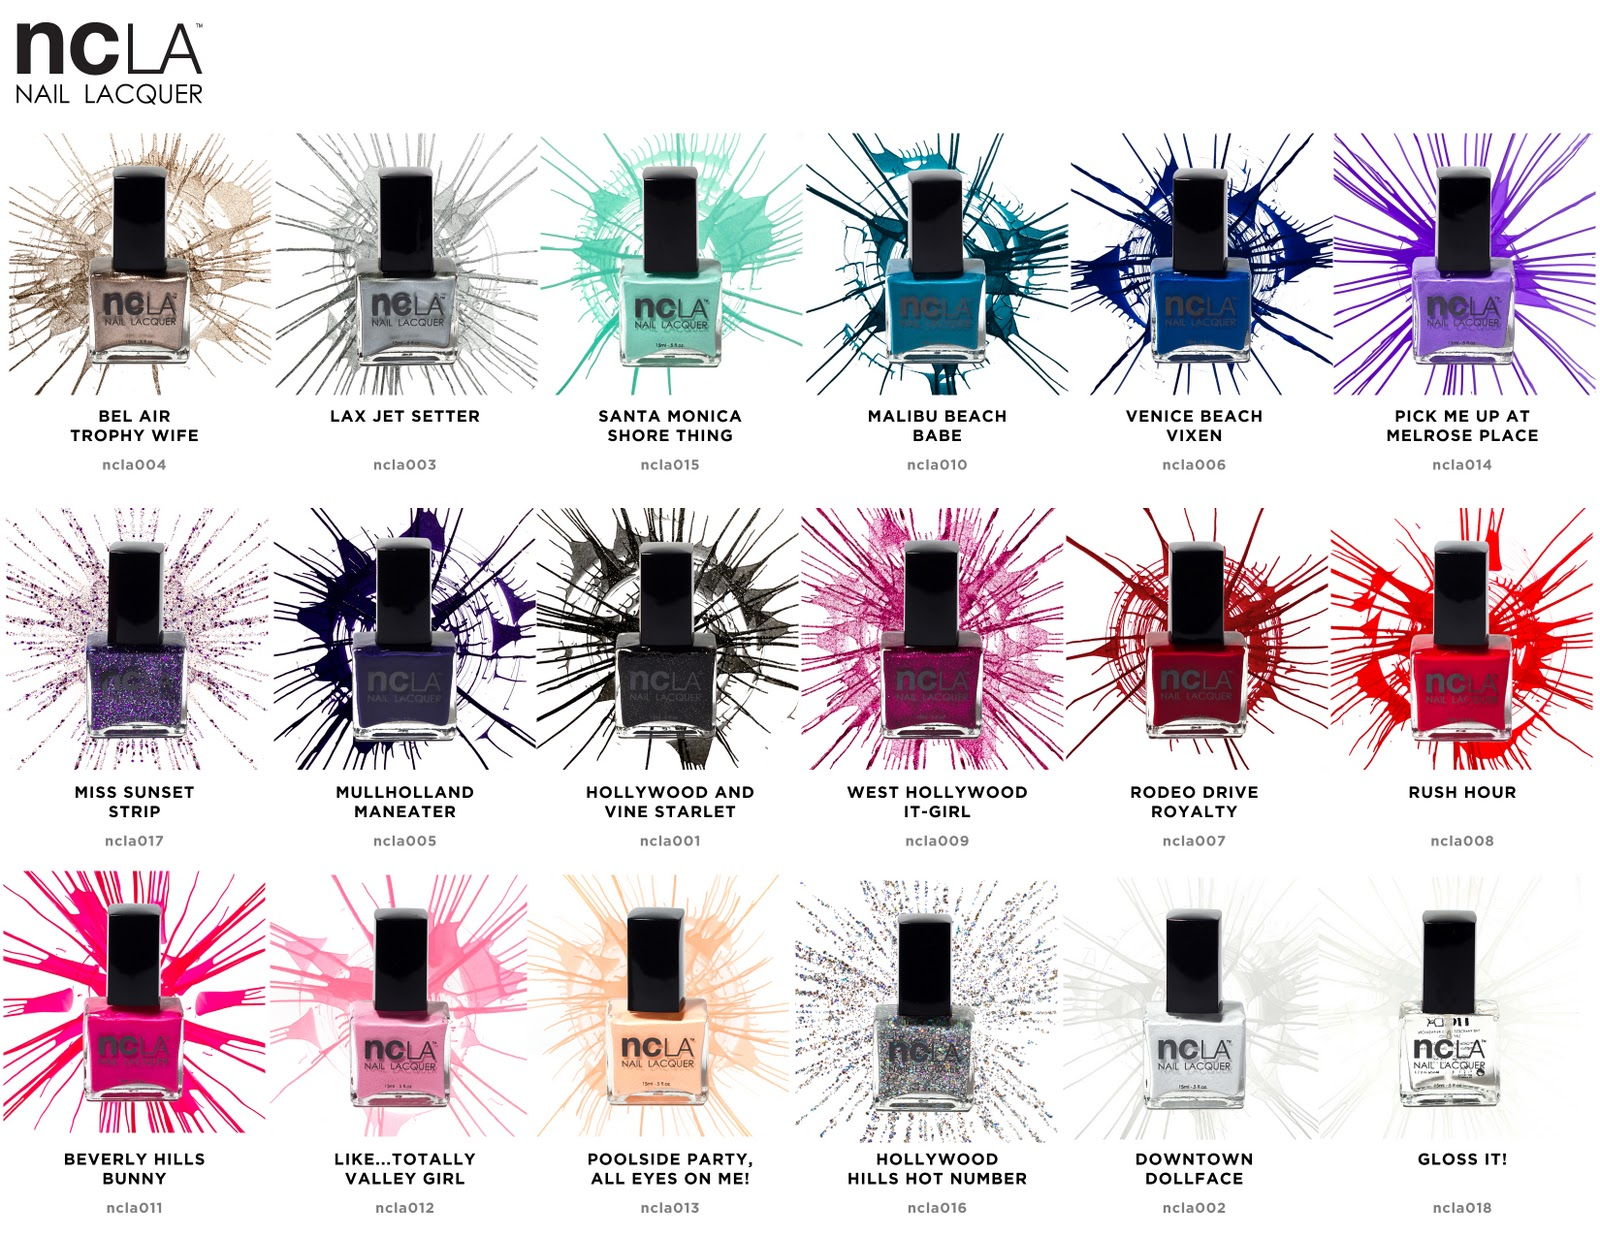 CANDY COATED TIPS: NCLA Nail Lacquer